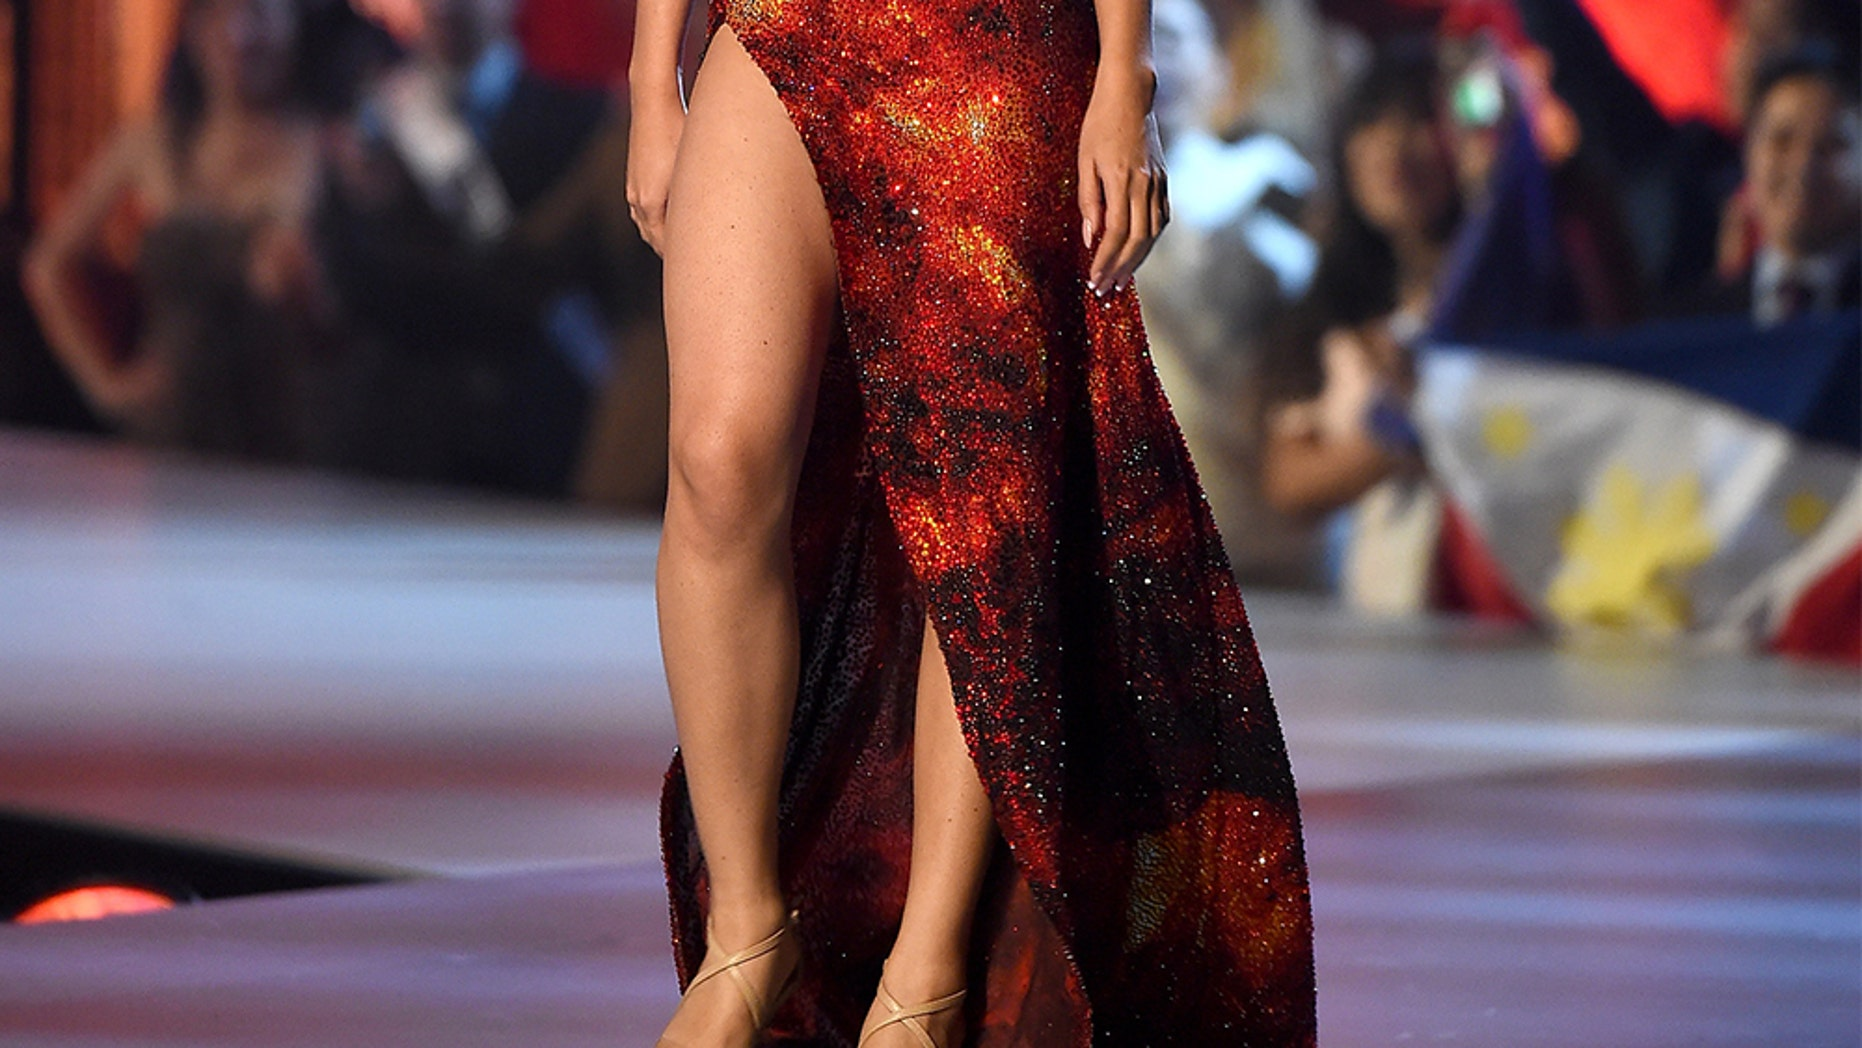 Miss Philippines Catriona Gray during the 2018 Miss Universe competition. — Getty